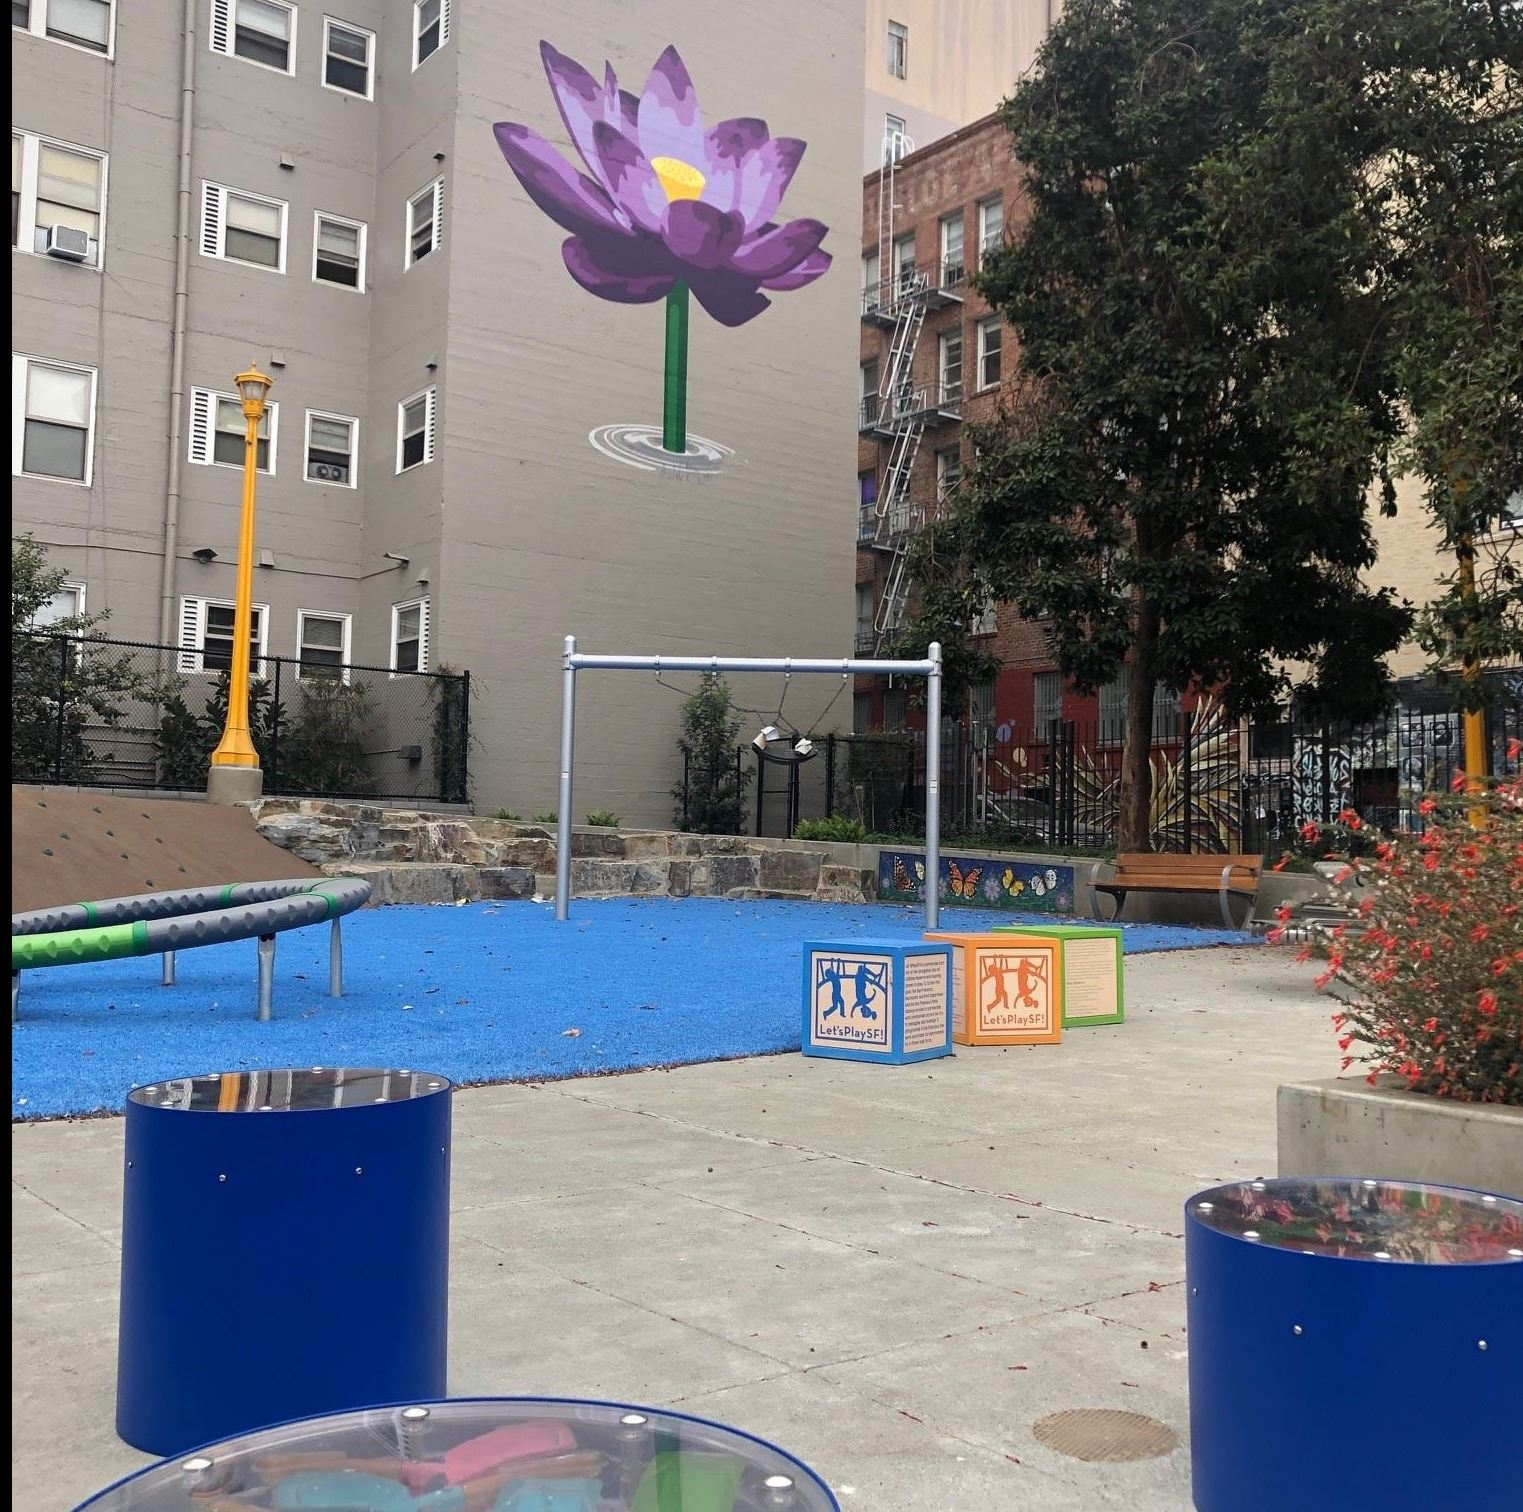 Blue circular light feature, cement, blue safety surface, swings, purple flower painted